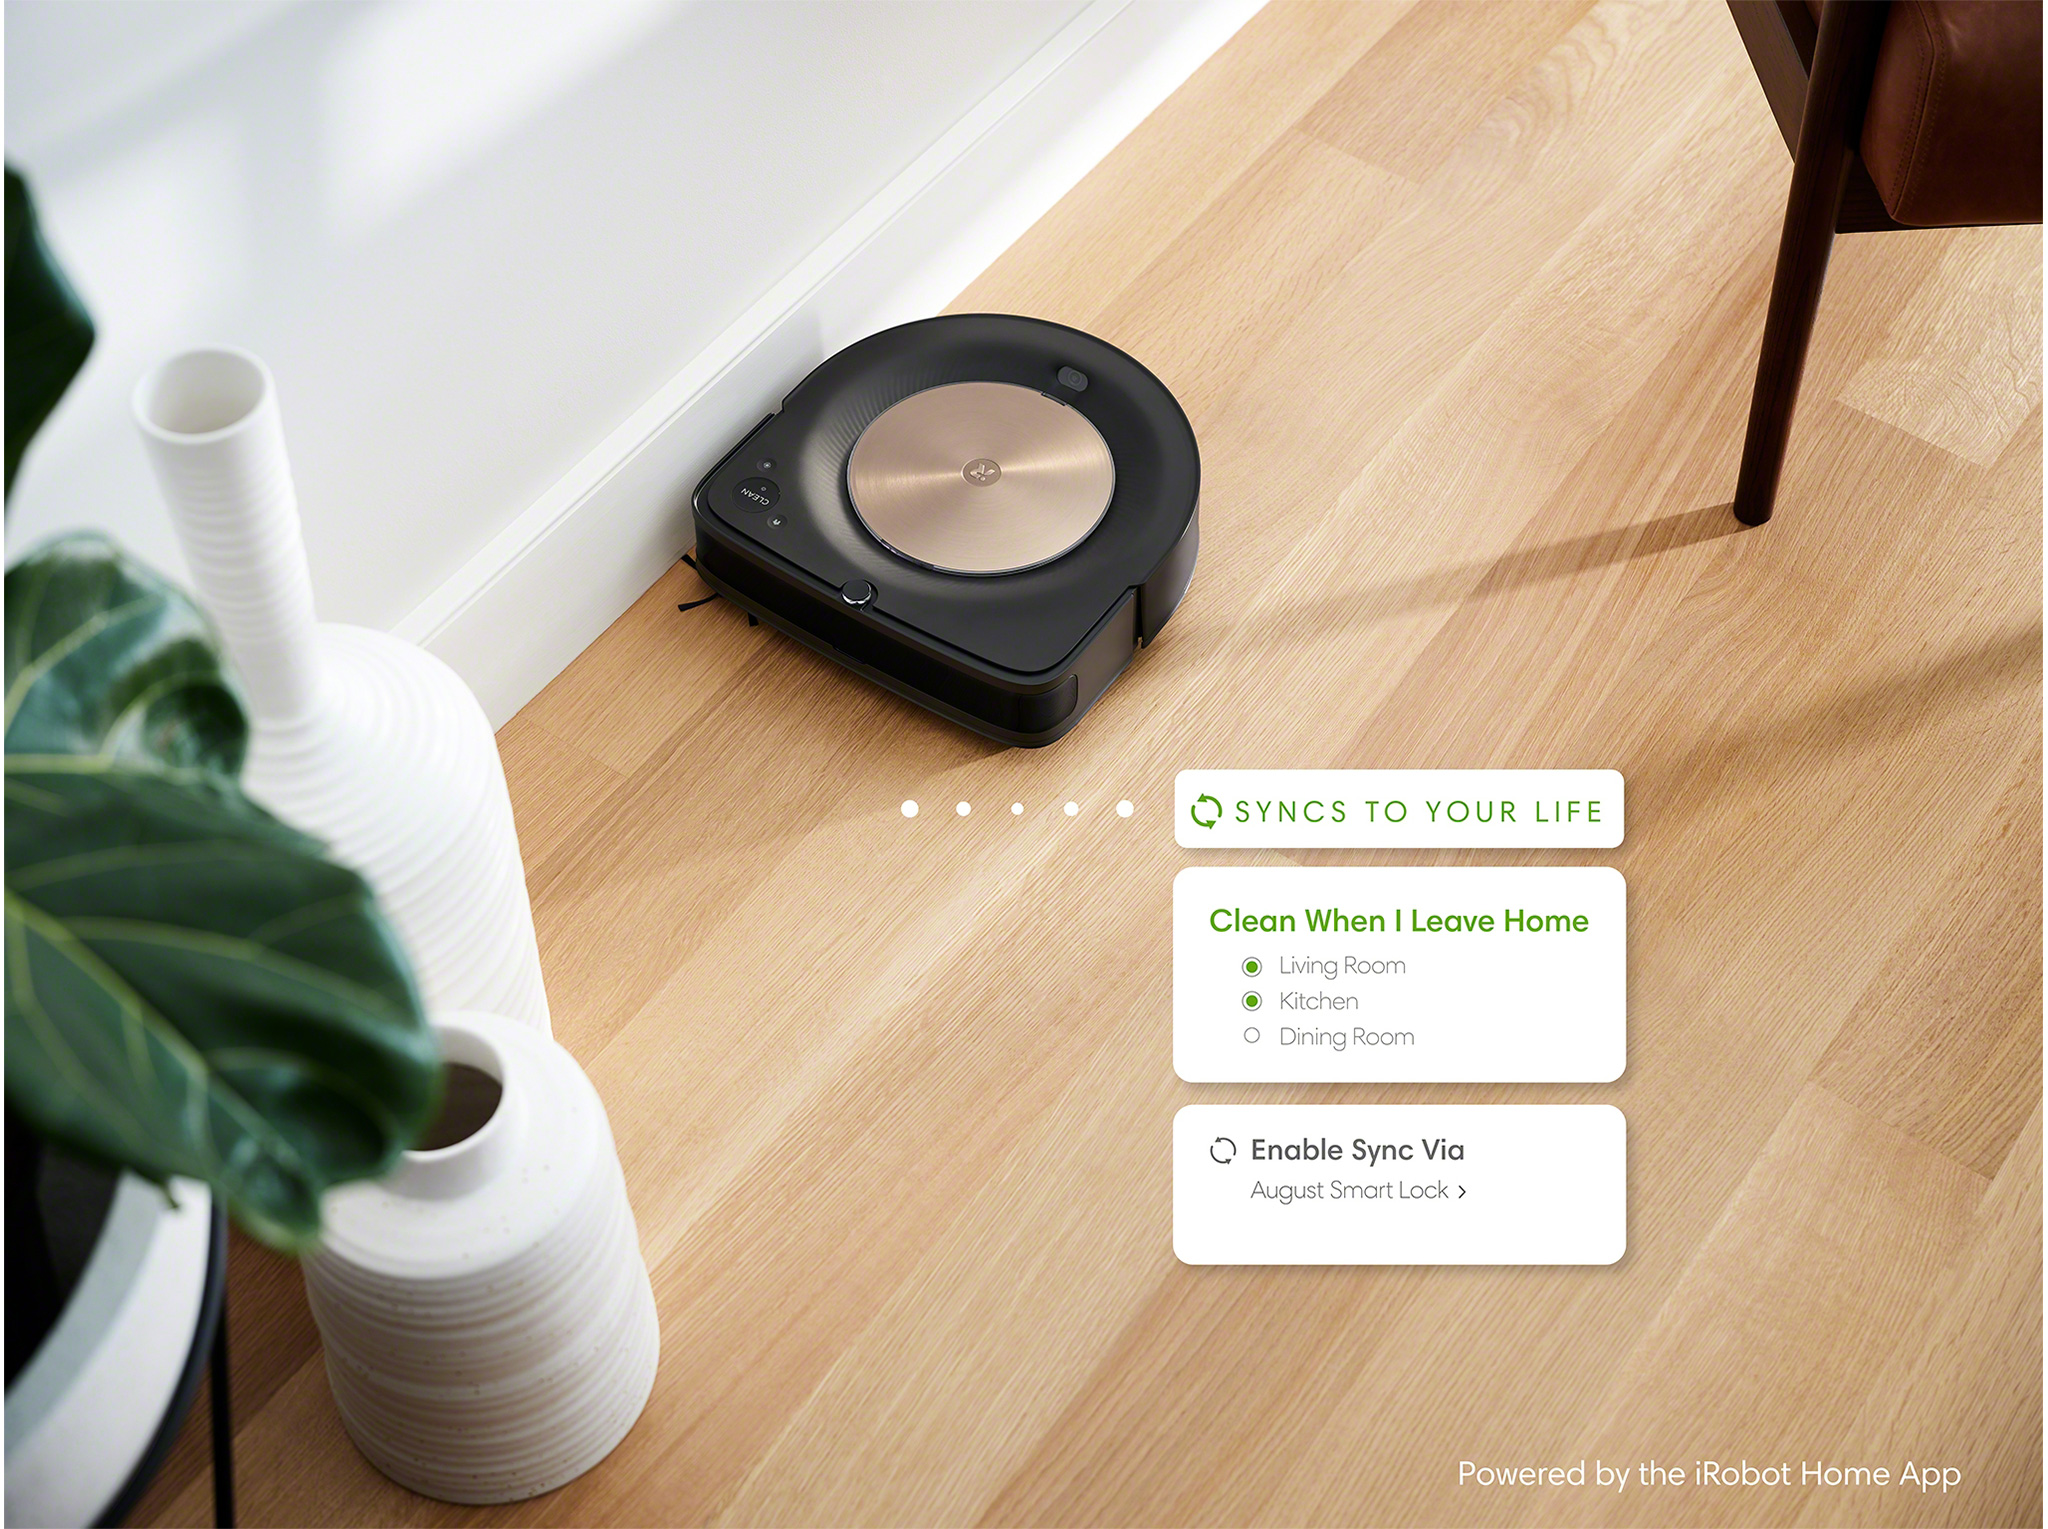 Set up event-based automations in the iRobot Home App to let Wi-Fi connected Roomba robot vacuums and Braava jet robot mops know when the ideal time is to start or stop cleaning. The iRobot Home App can use location-based services like Life360, or take prompts from smart home devices, like the August Wi-Fi Smart Lock, to know when you're away and begin cleaning.